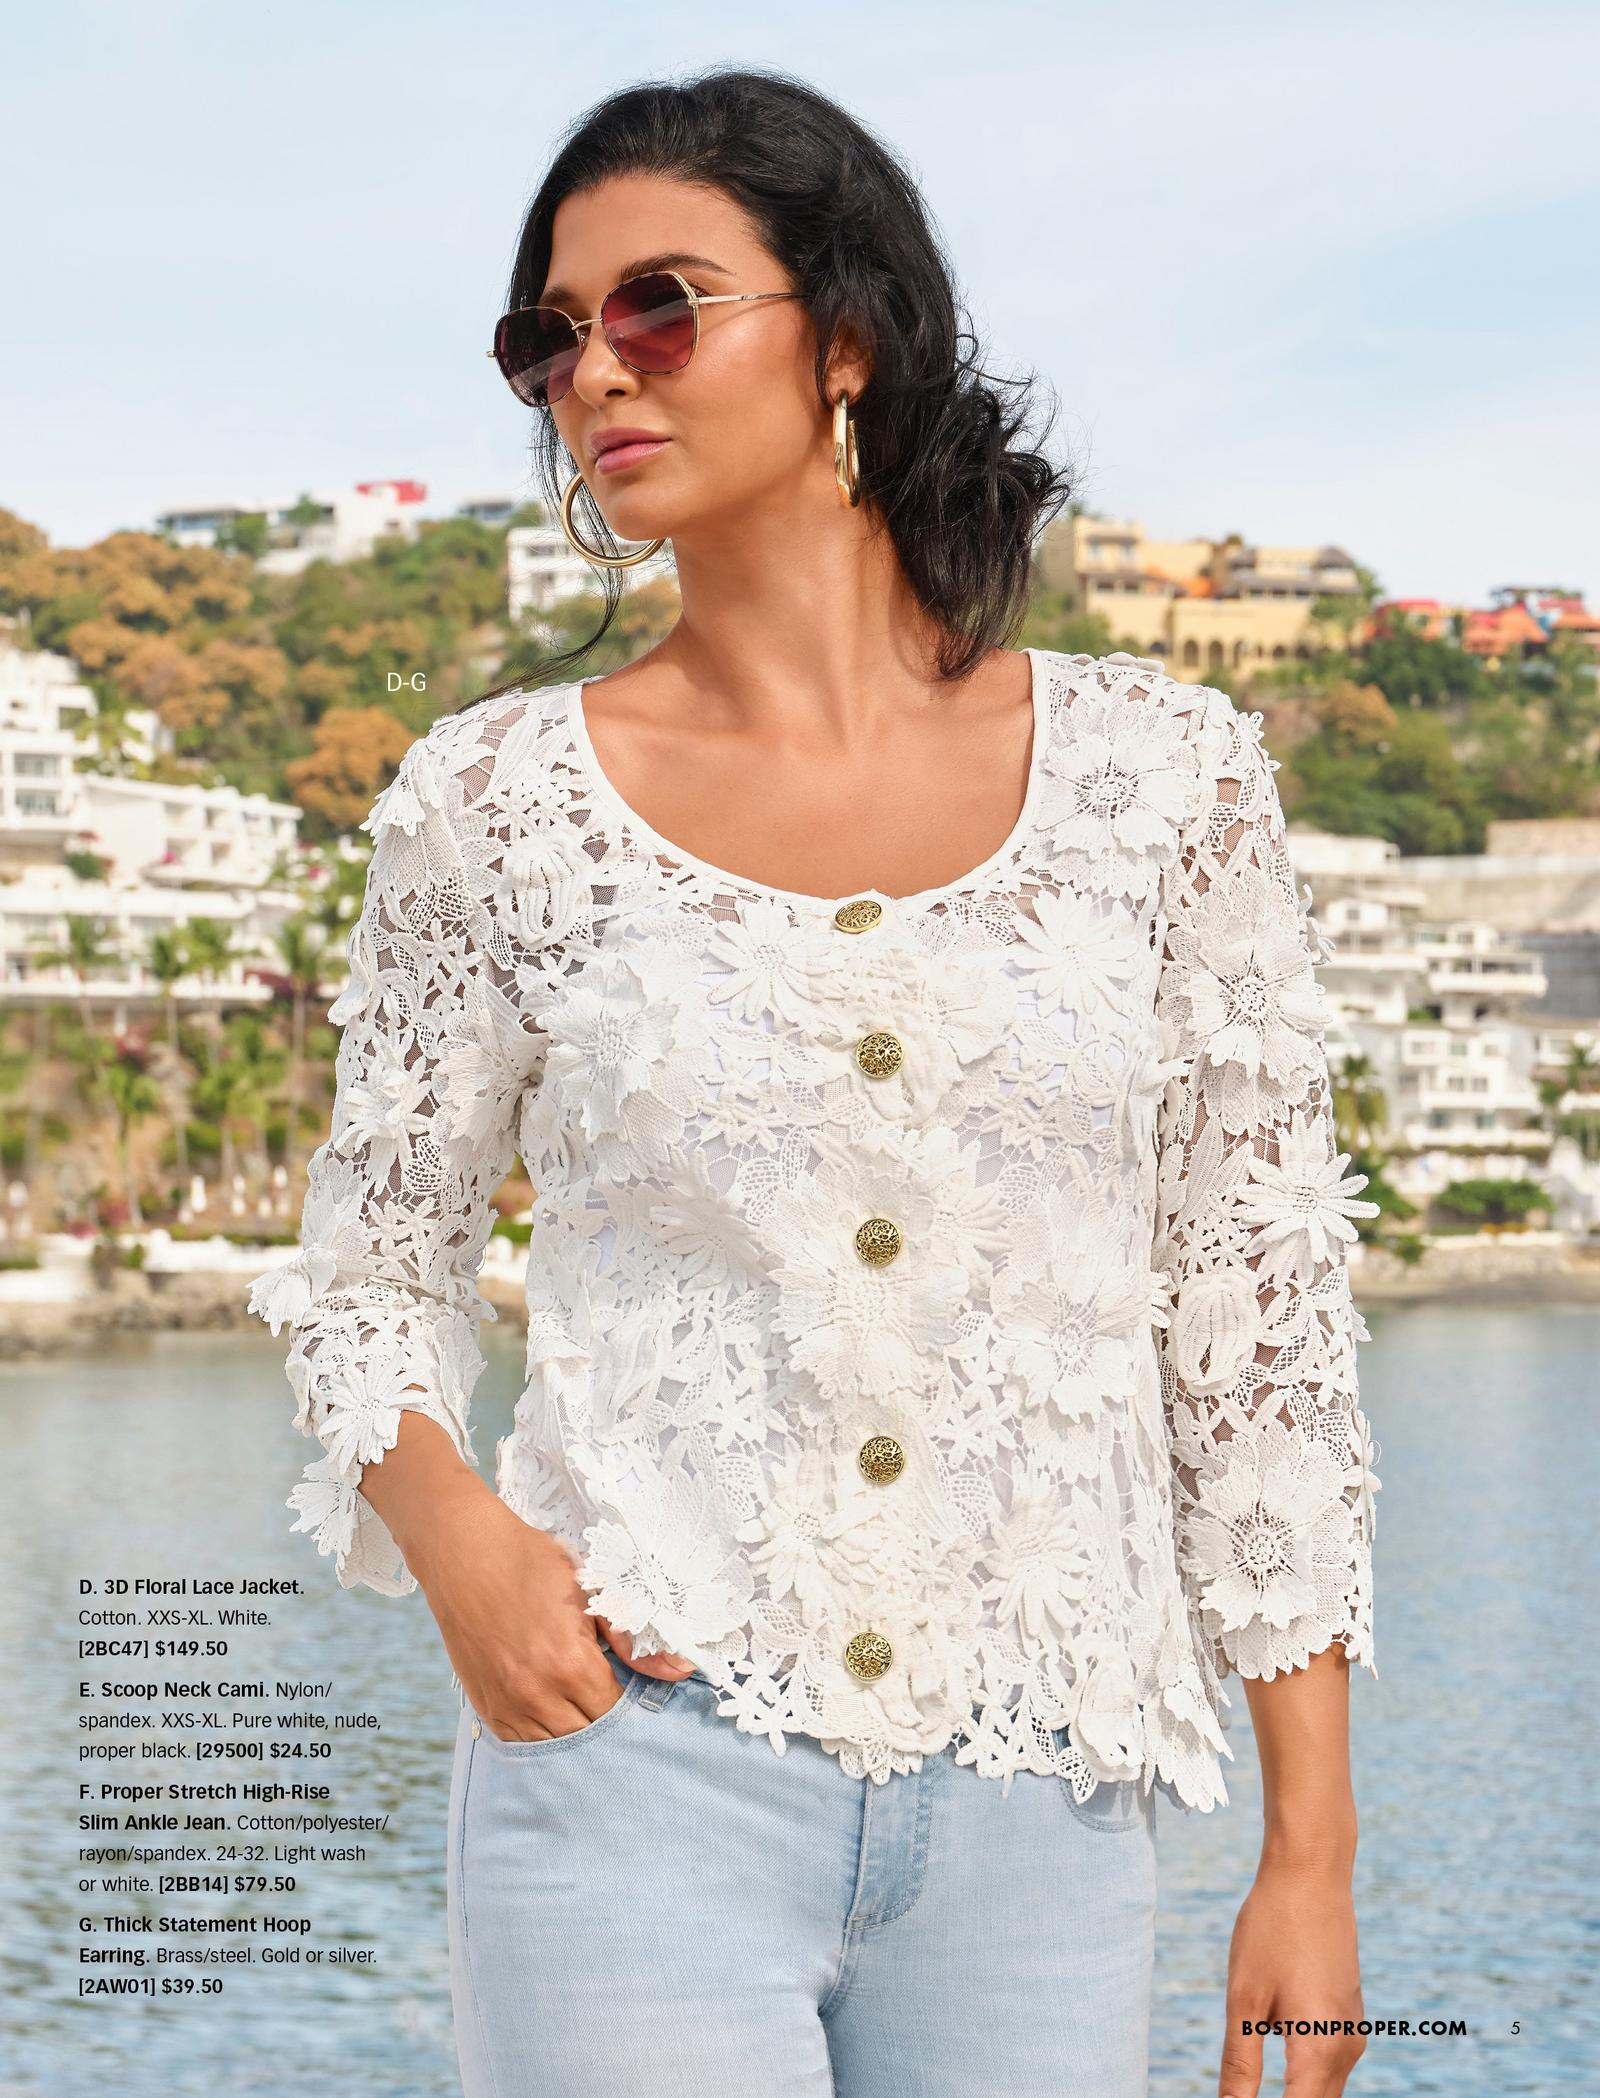 model wearing a white lace cardigan, white tank top, light wash jeans, gold hoop earrings, and sunglasses.